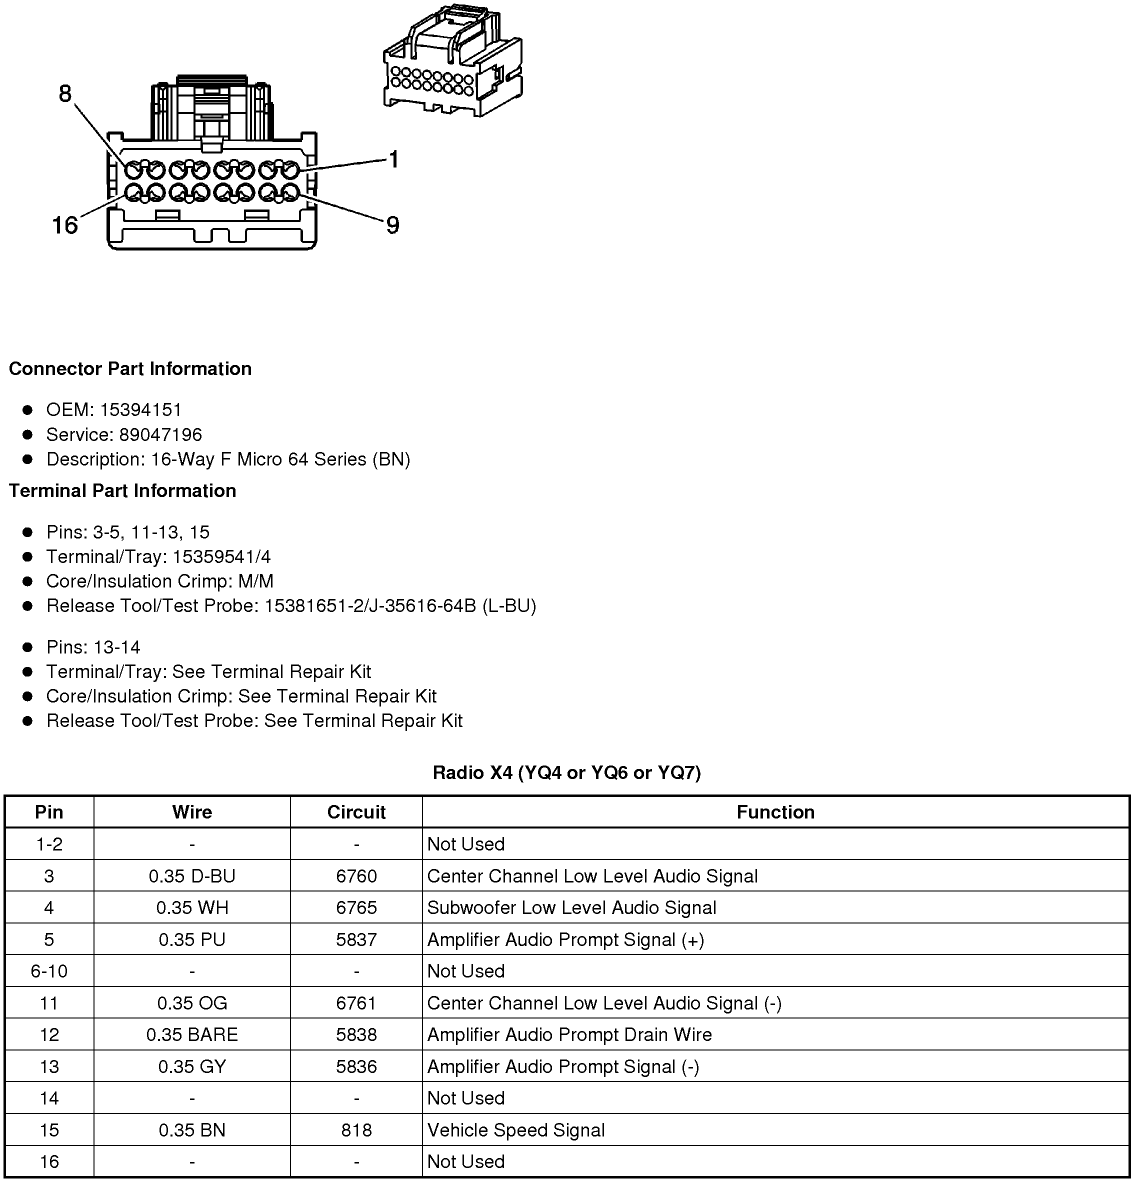 wiring diagram or schematic for an 2008 sts-v Bose system ... on